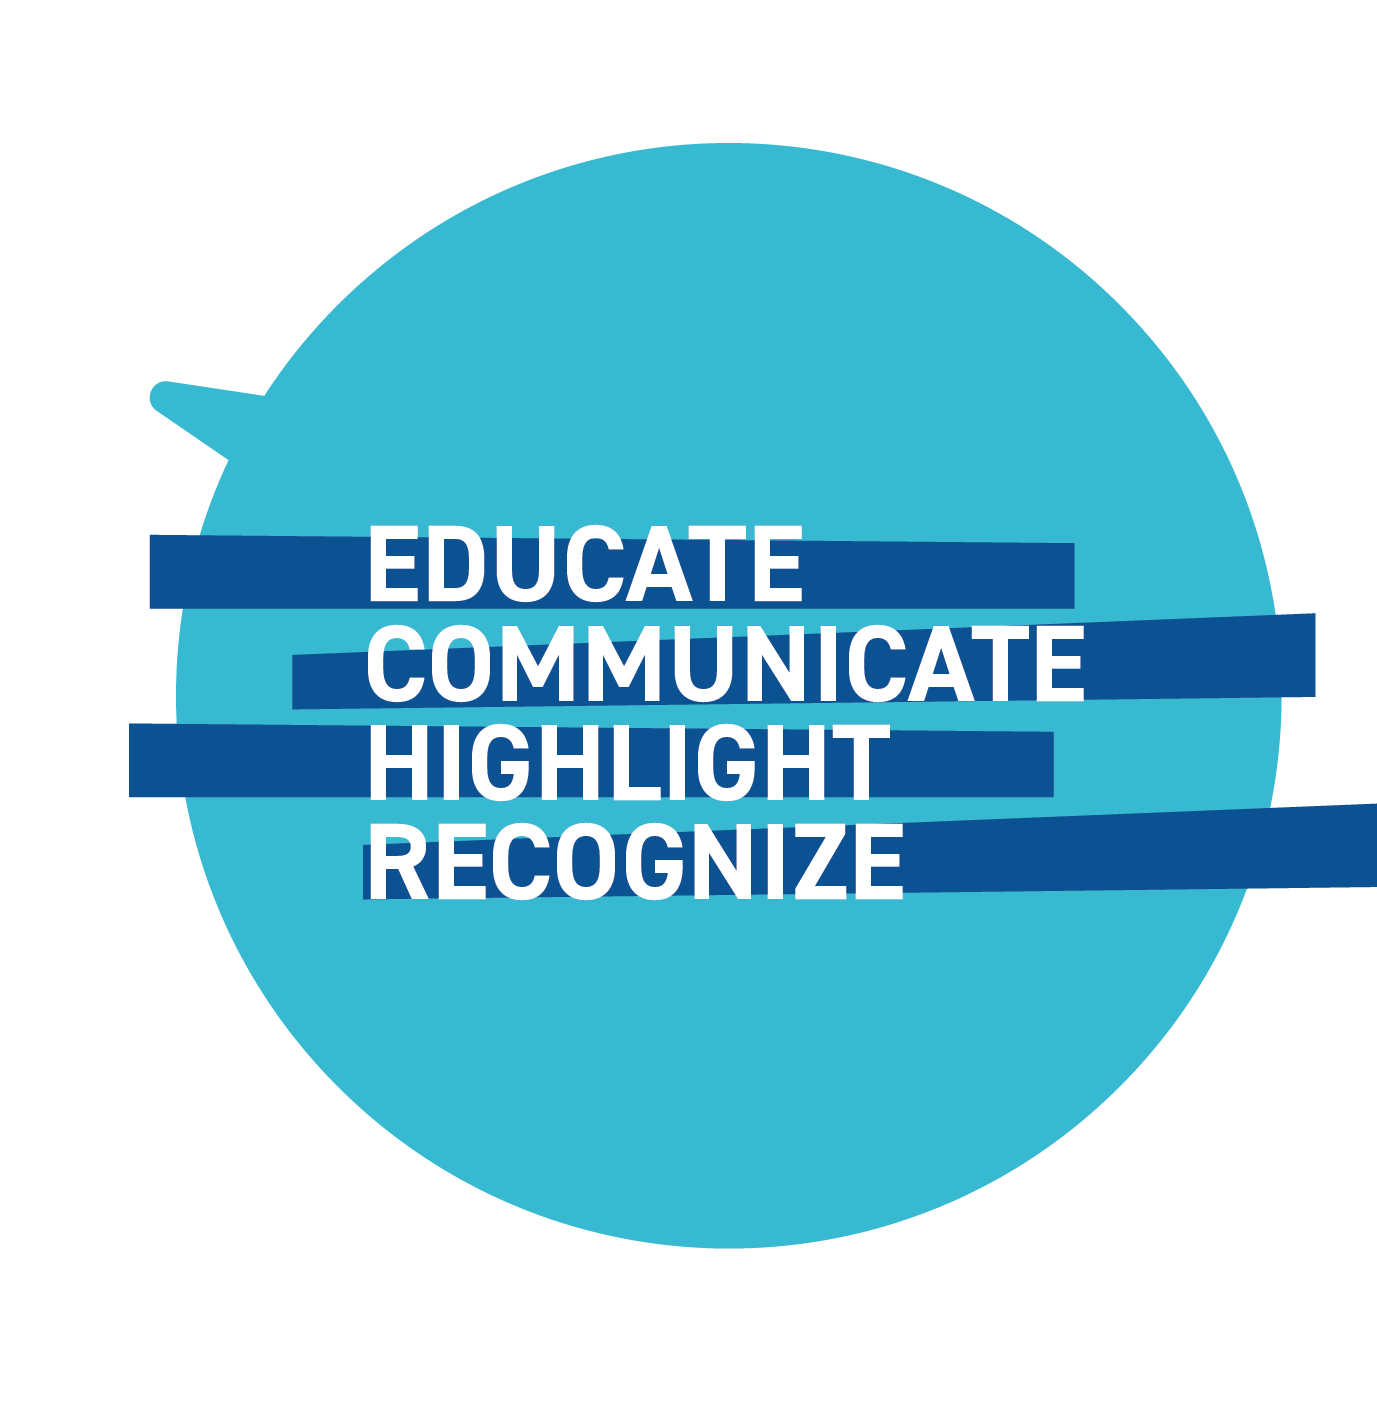 Do: Educate, communicate, highlight, and recognize